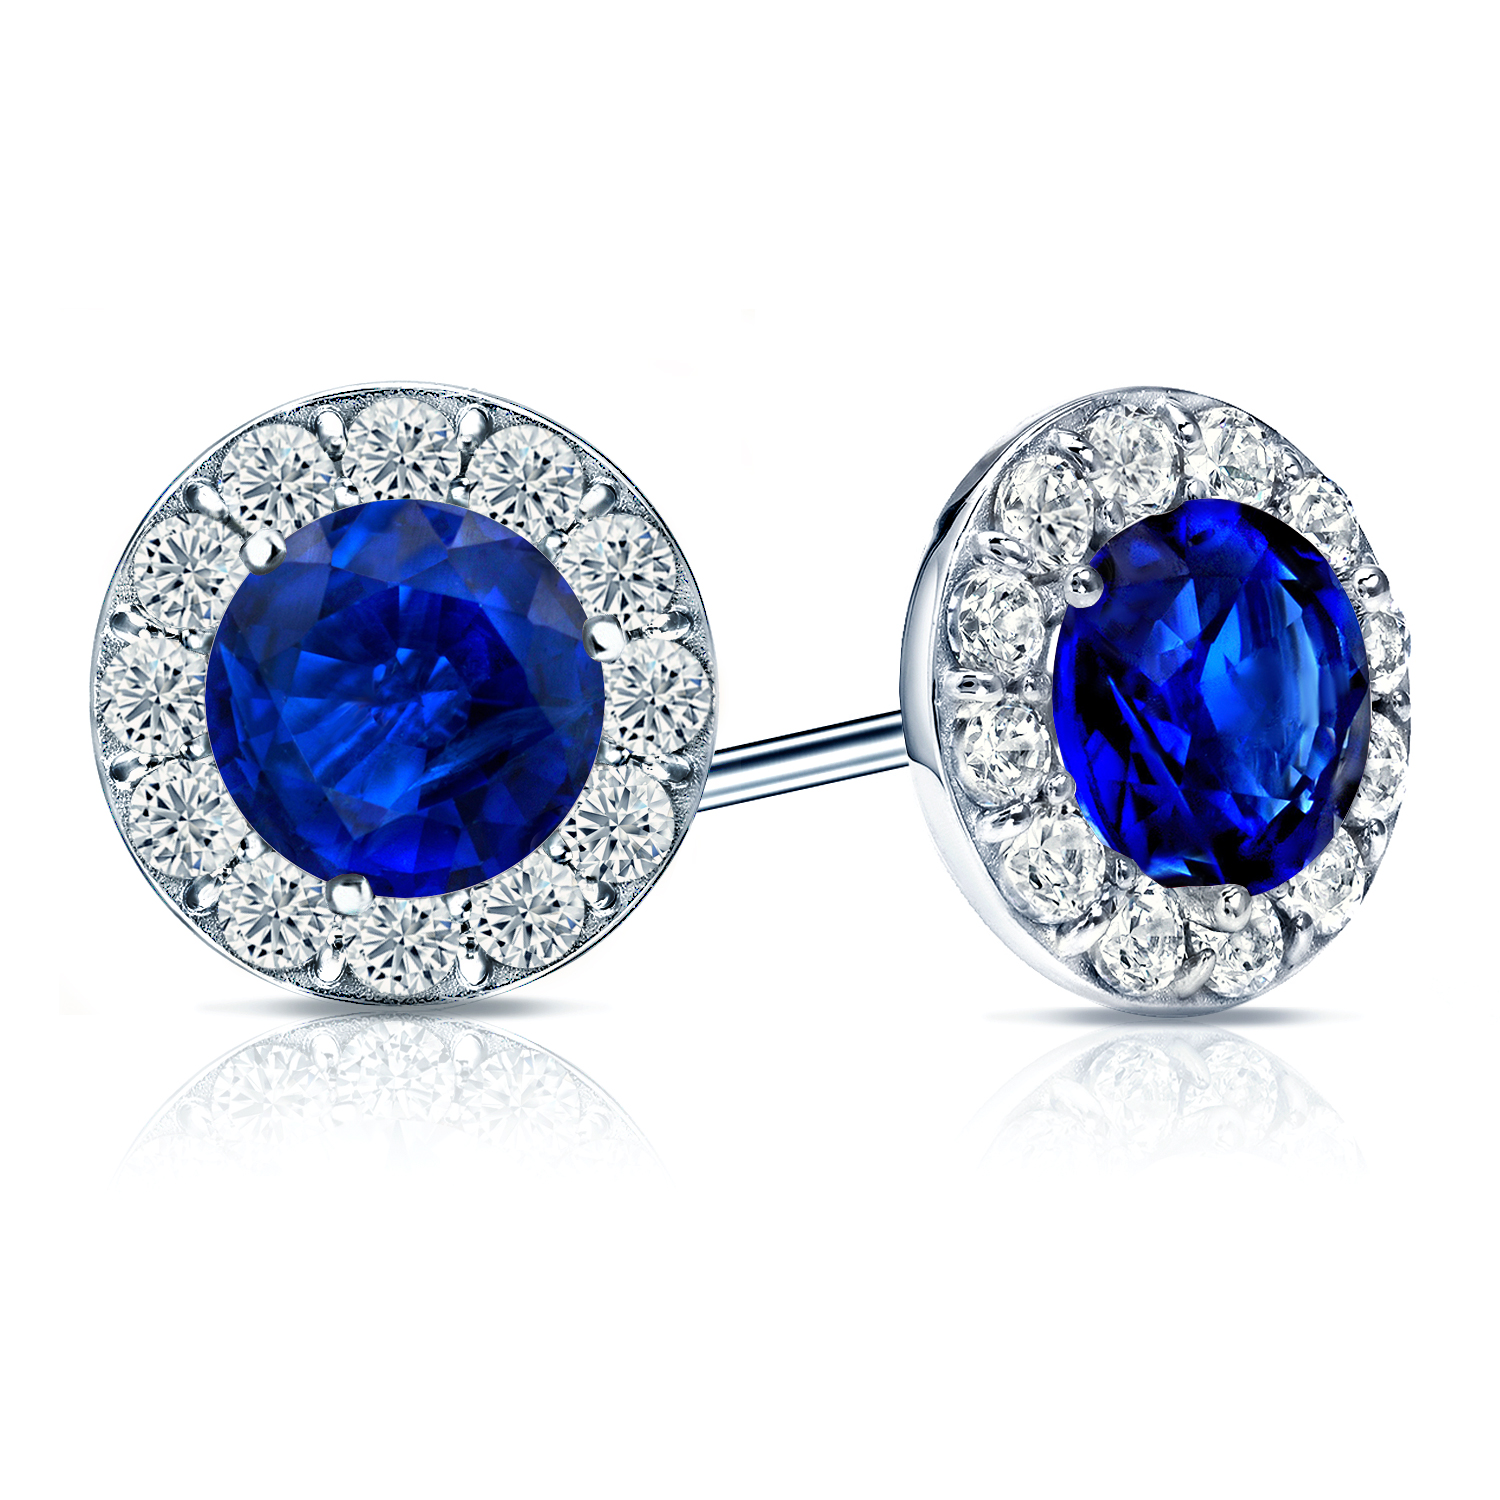 Certified 0.50 cttw Round Blue Sapphire Gemstone Stud Earrings in 14k White Gold Halo (AAA)